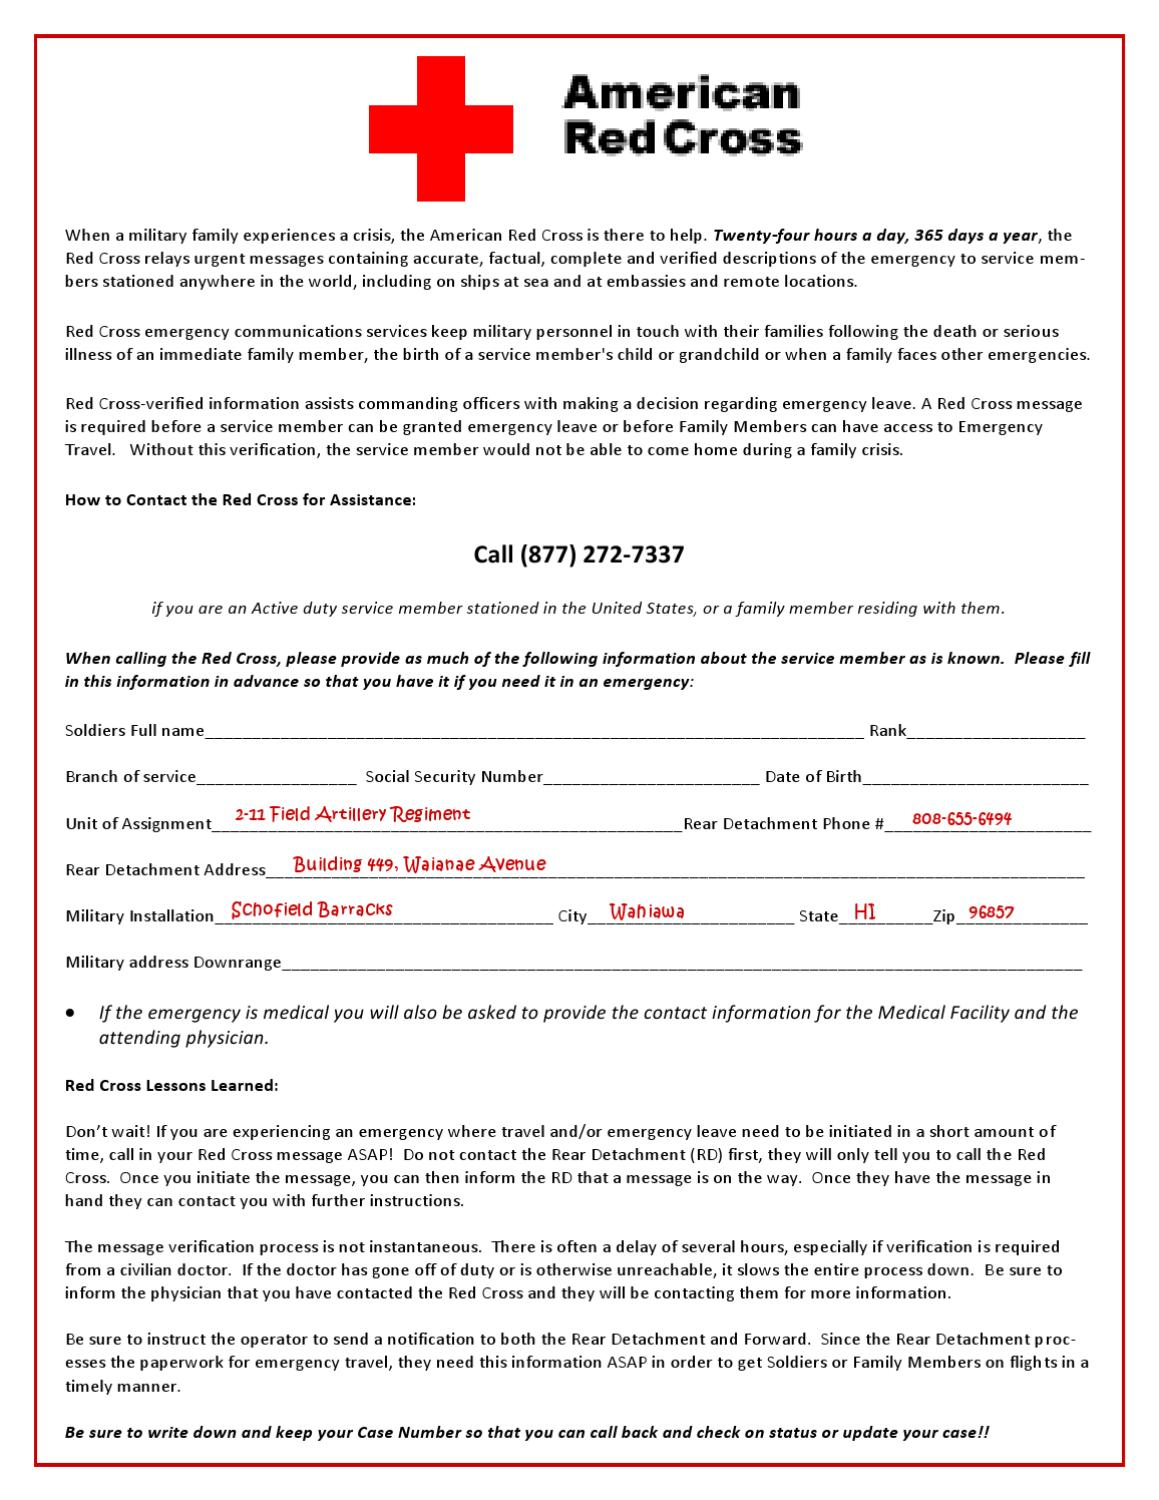 Red Cross Message Assistance Sheet by Emily Harrison - issuu